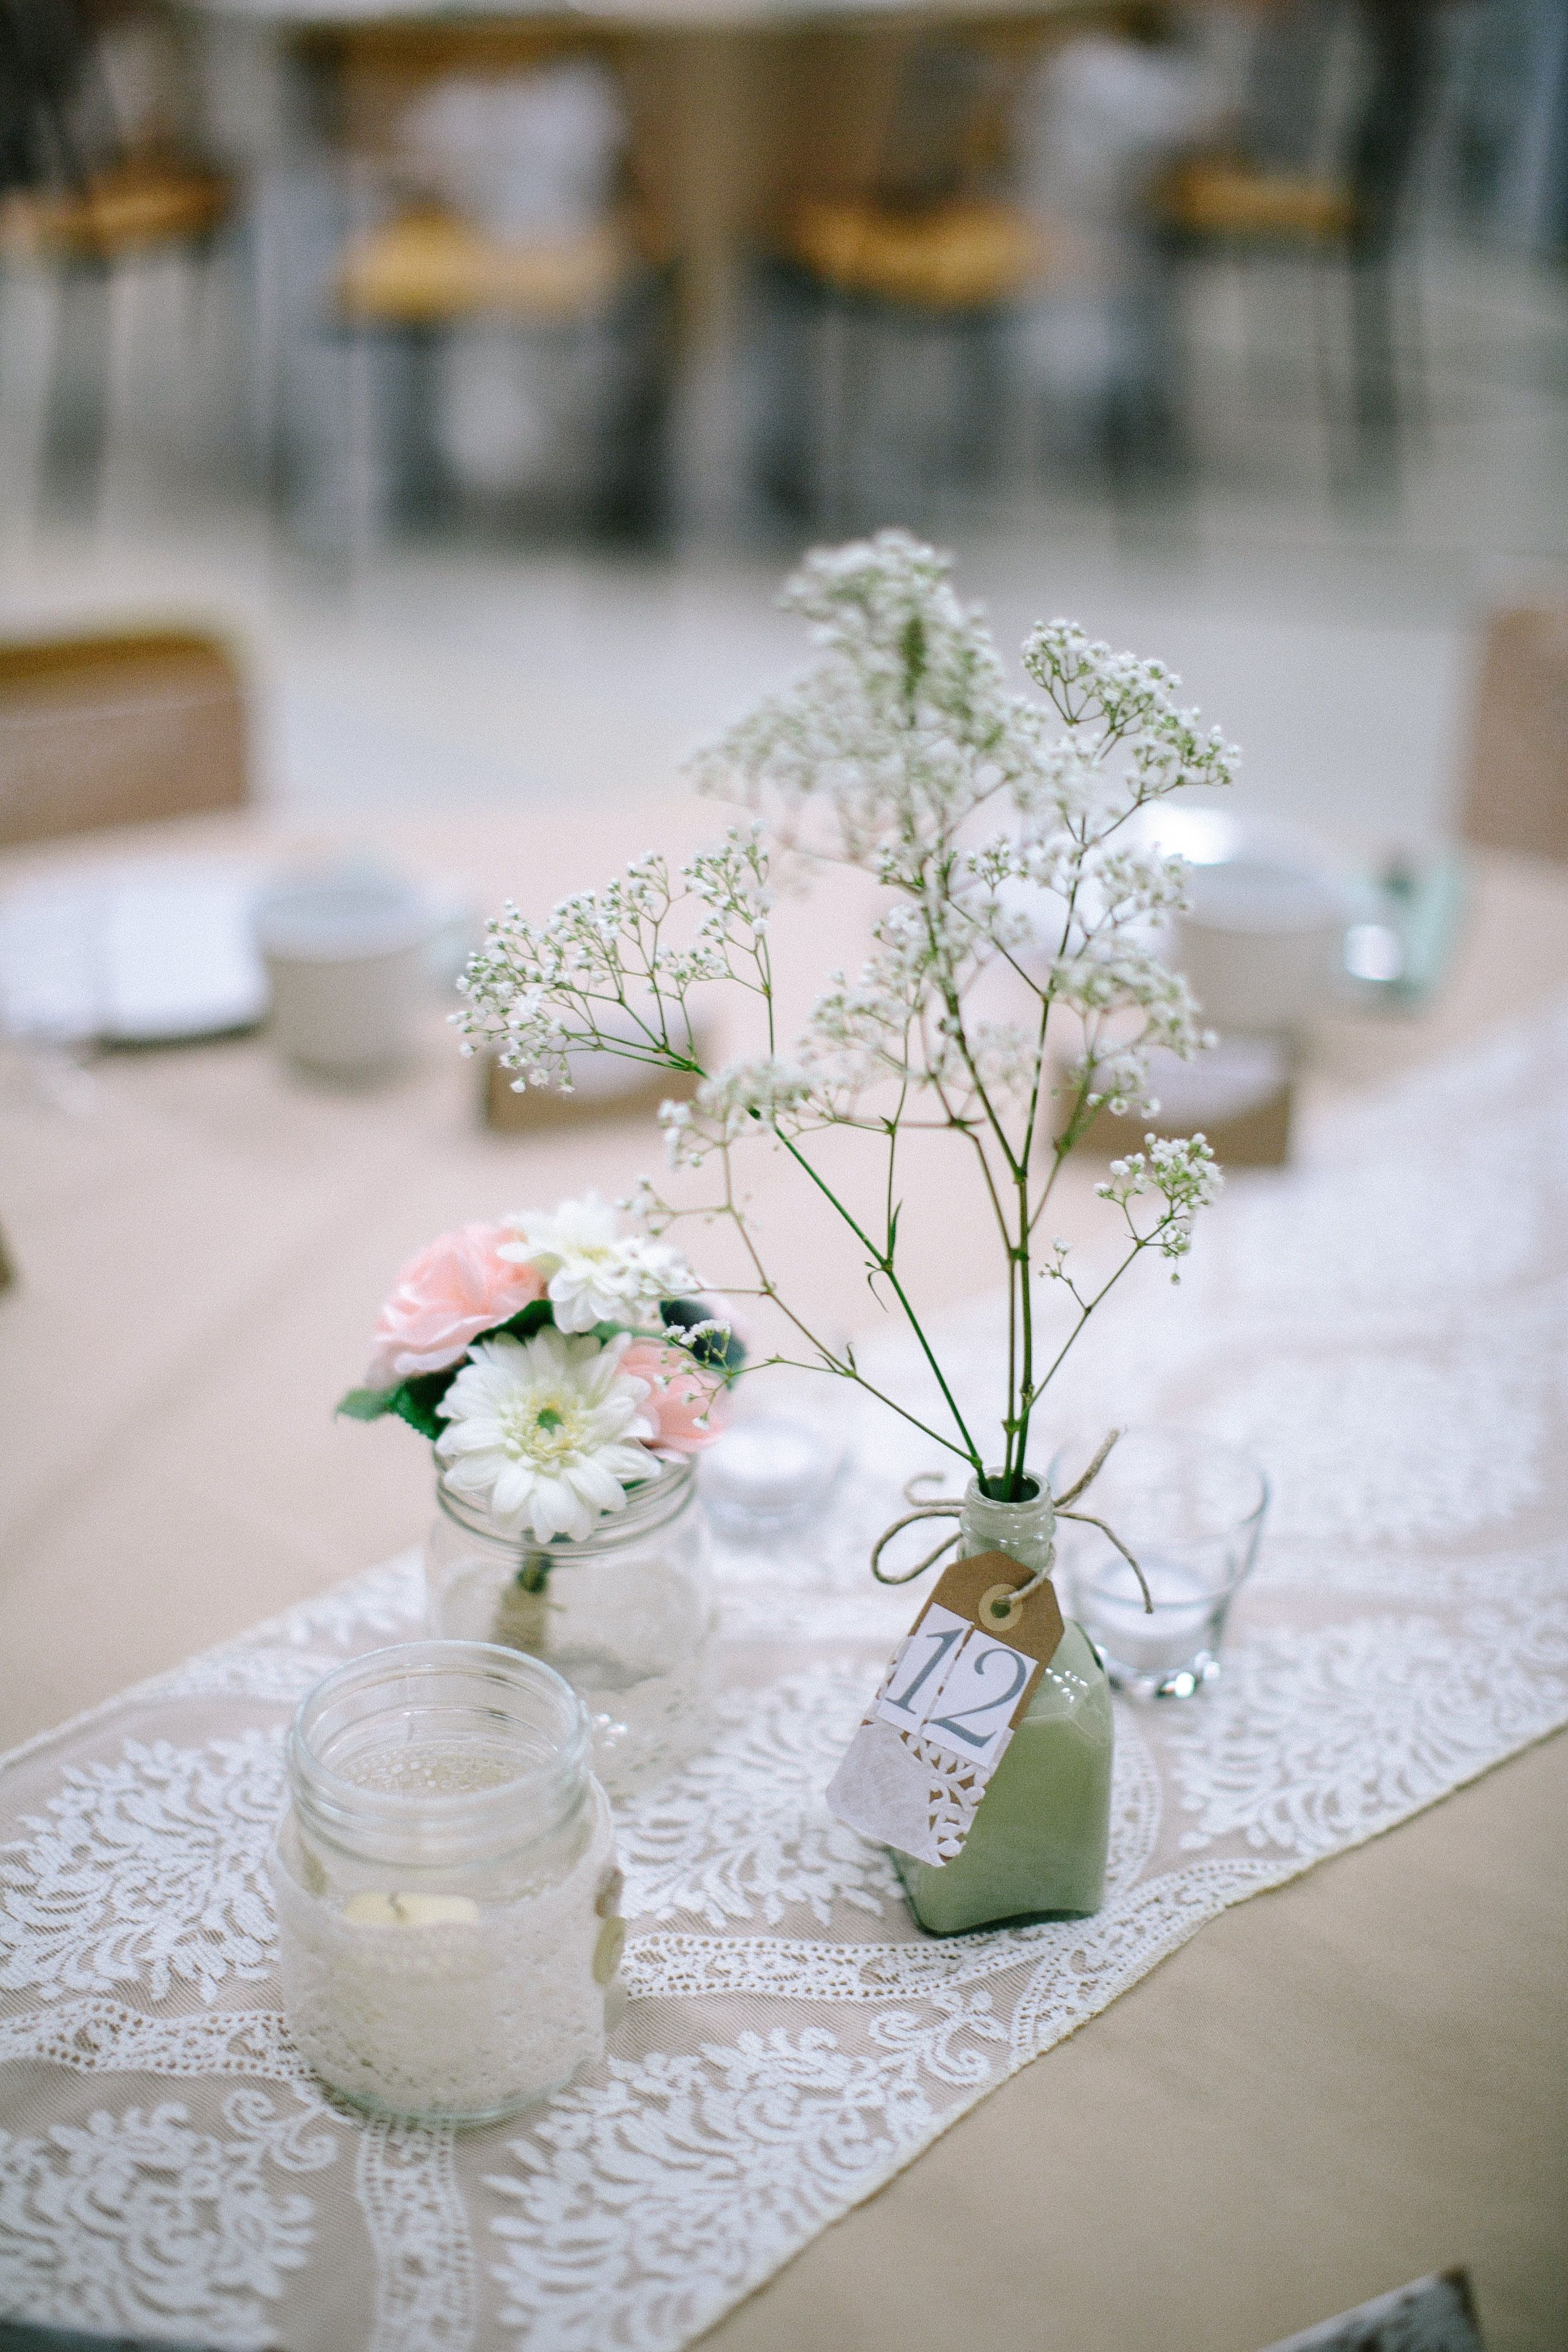 #Wedding #Reception #Centre #Pieces # Decorations #Flowers #Shabby #Chic